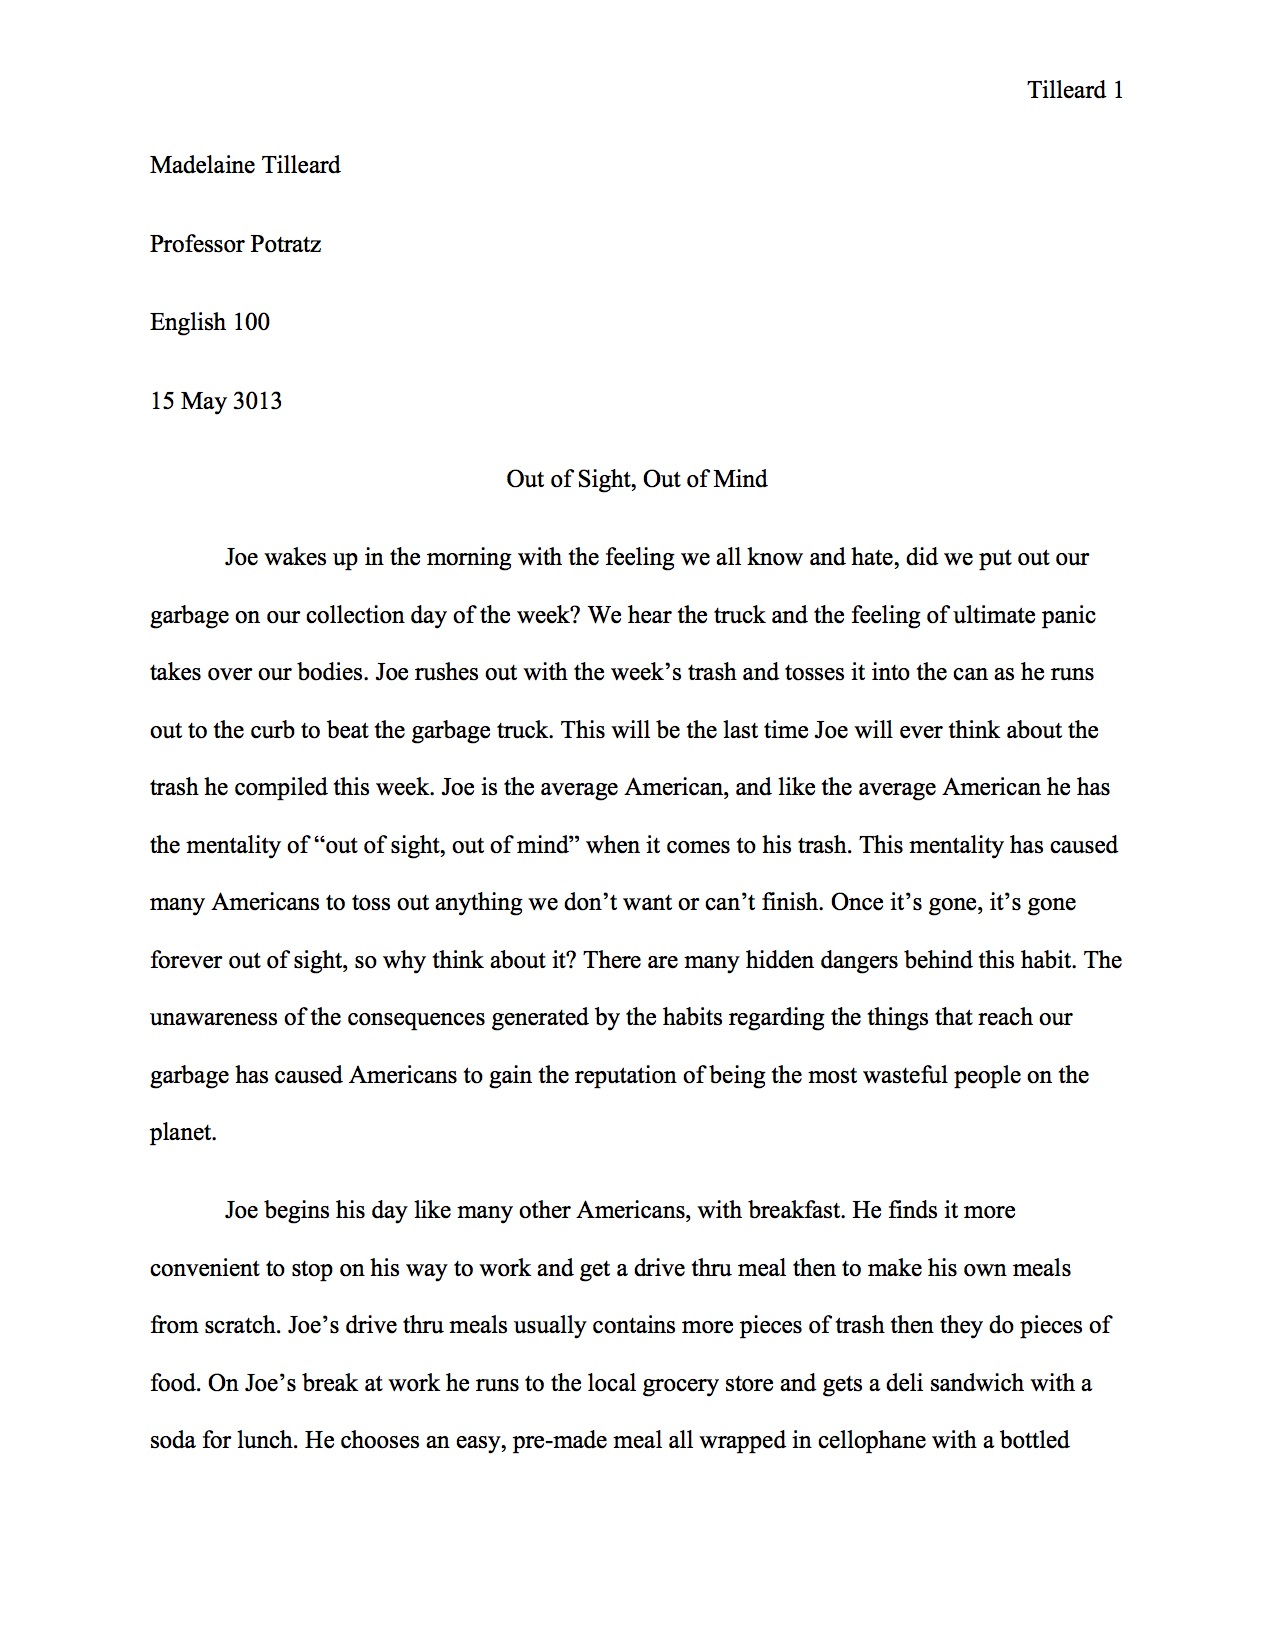 Essay On Rabindranath Tagore In Hindi  Speech Essay also Reasons For Going To College Essay  Research Paper Ap English Example Collection Of  Right To Die Essay